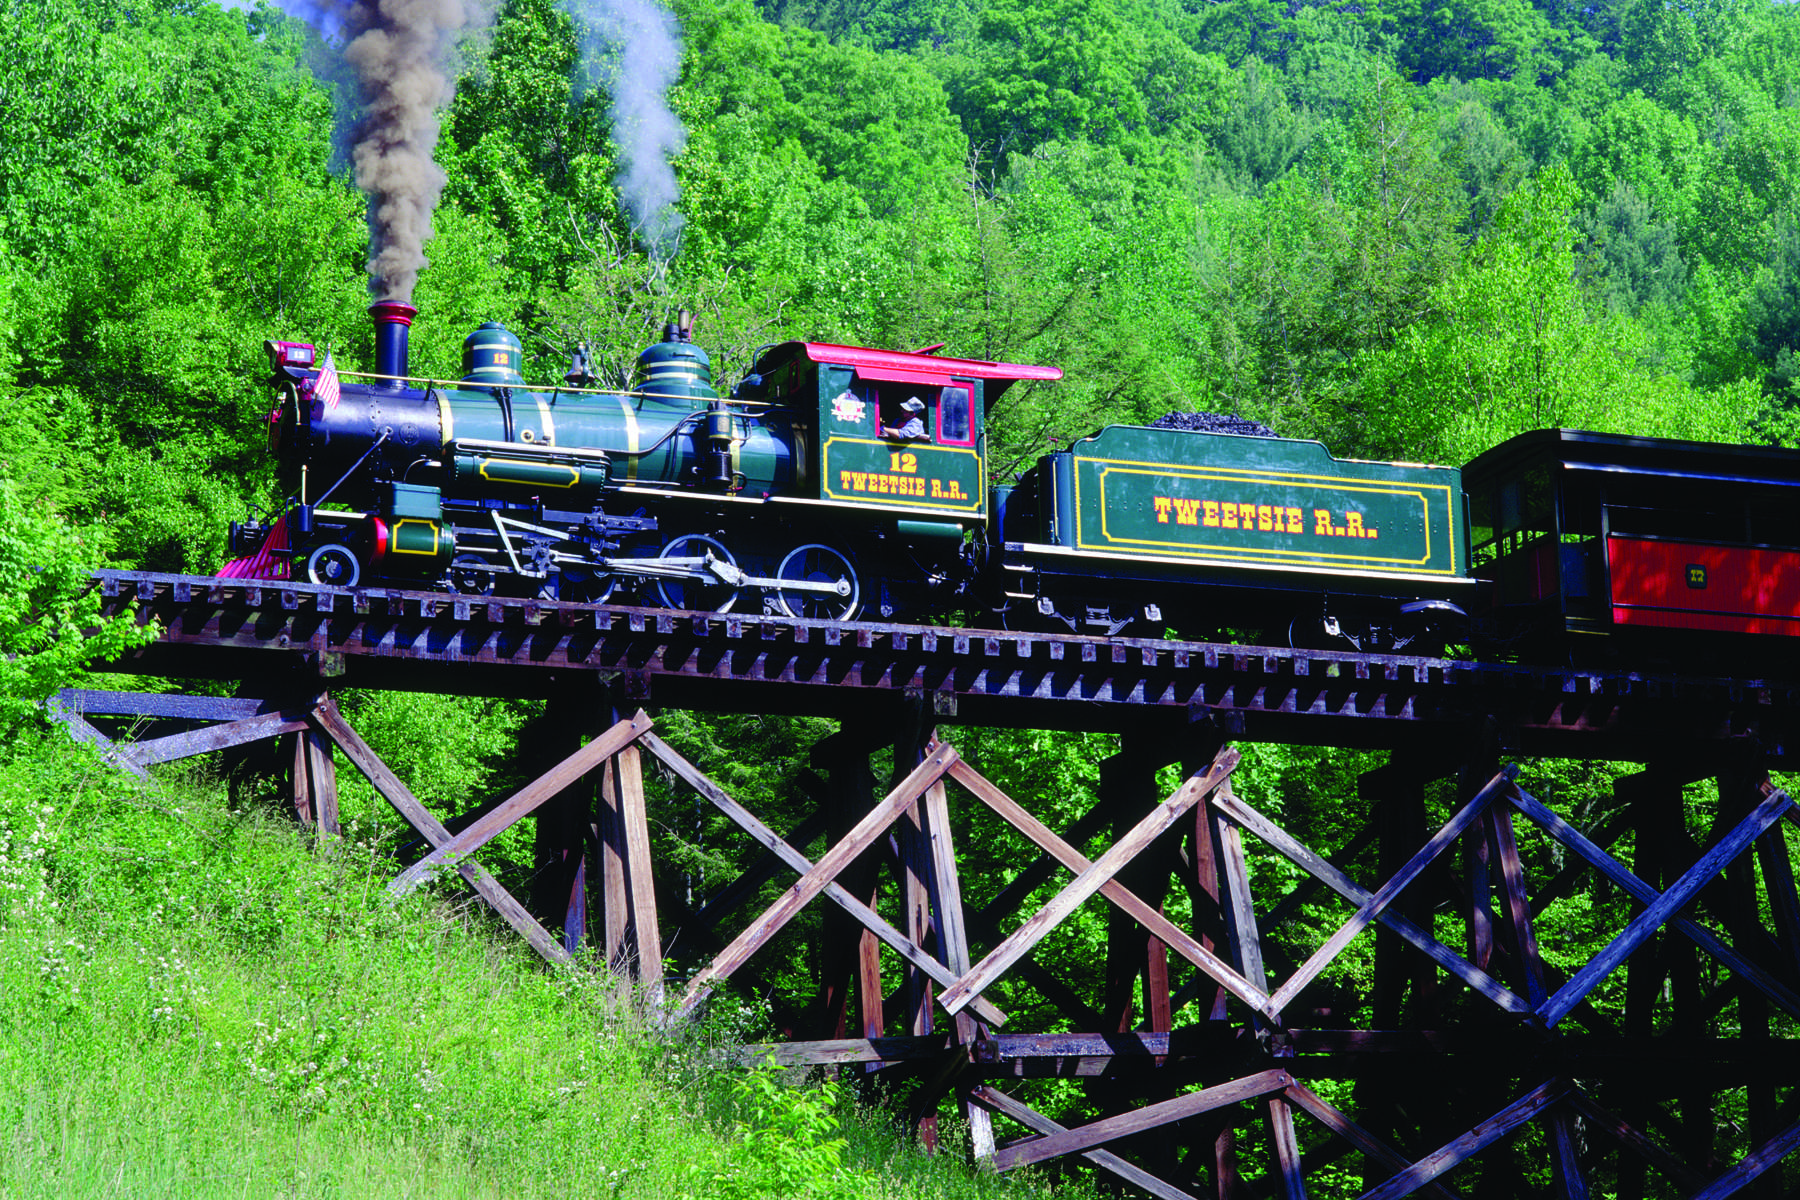 Tweetsie Railroad train on trestle located just down from Mystery Hill